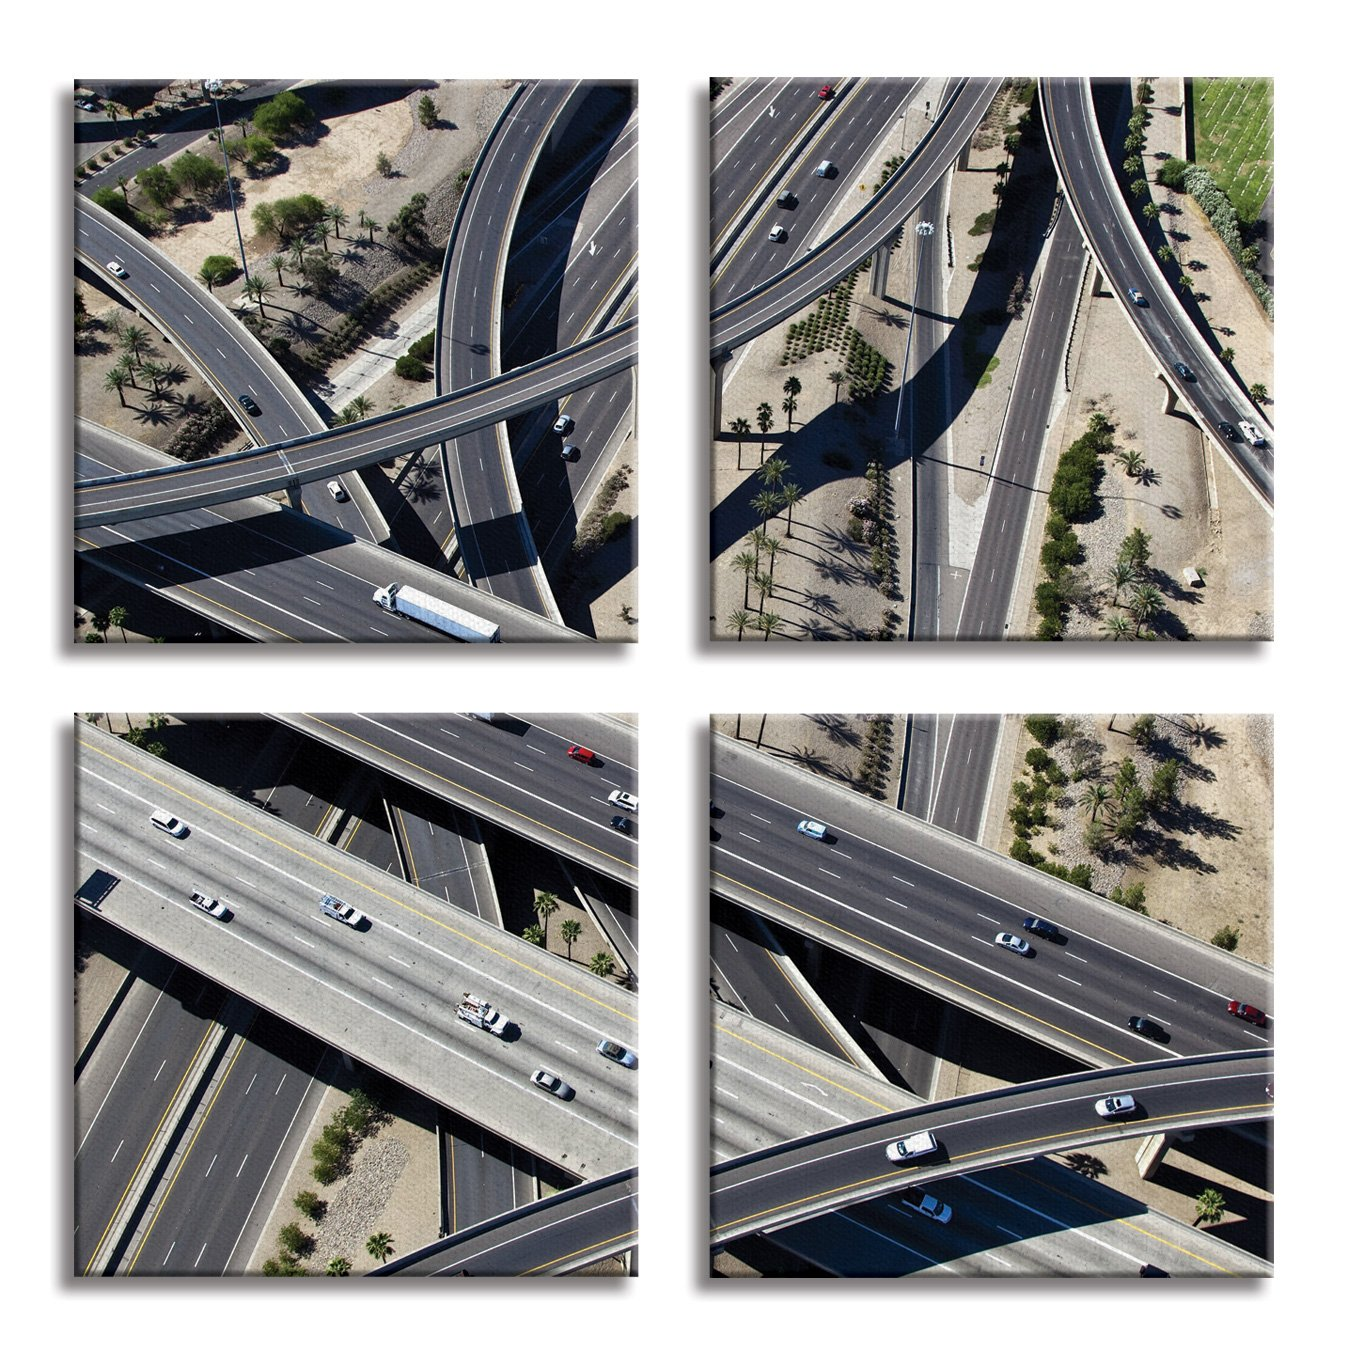 JP London 4 Panels 14in 4 Huge Gallery Wrap Canvas Wall Art Los Angeles Freeway Maze At Overall 28in QDCNV2373 DMCNV0082